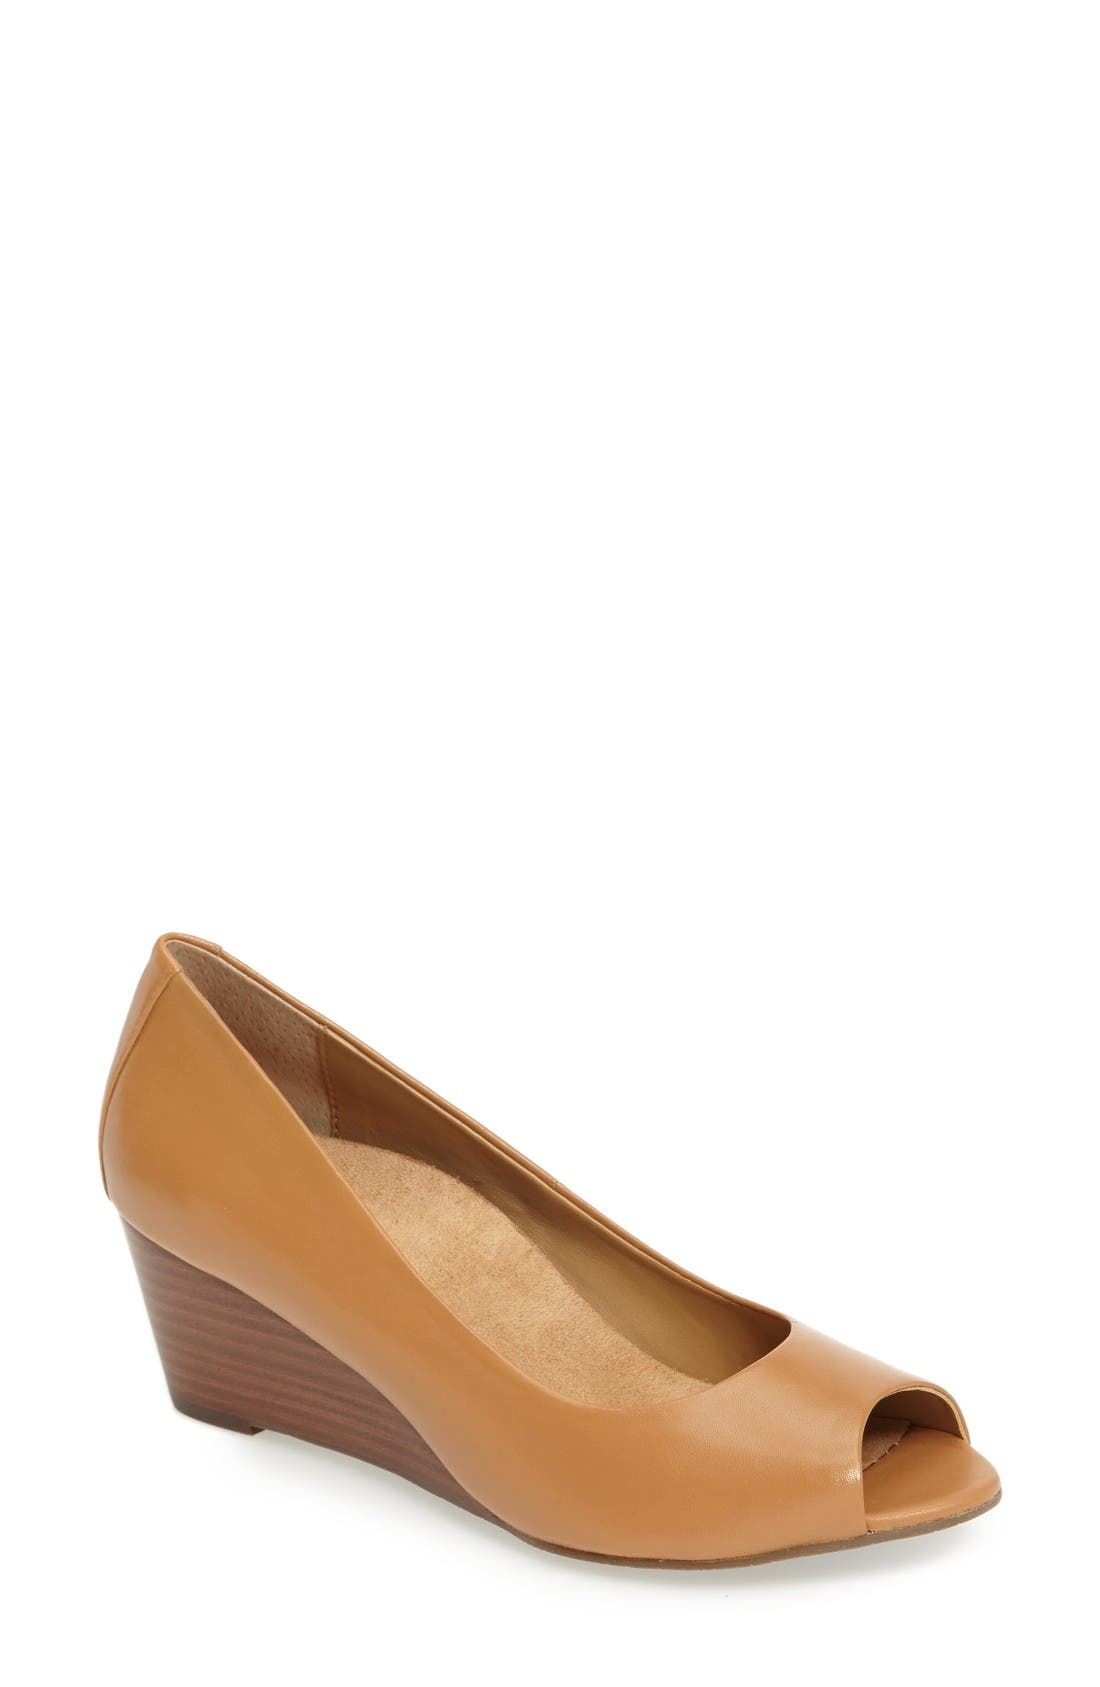 Alternate Image 1 Selected - Vionic Bria Wedge Pump (Women)